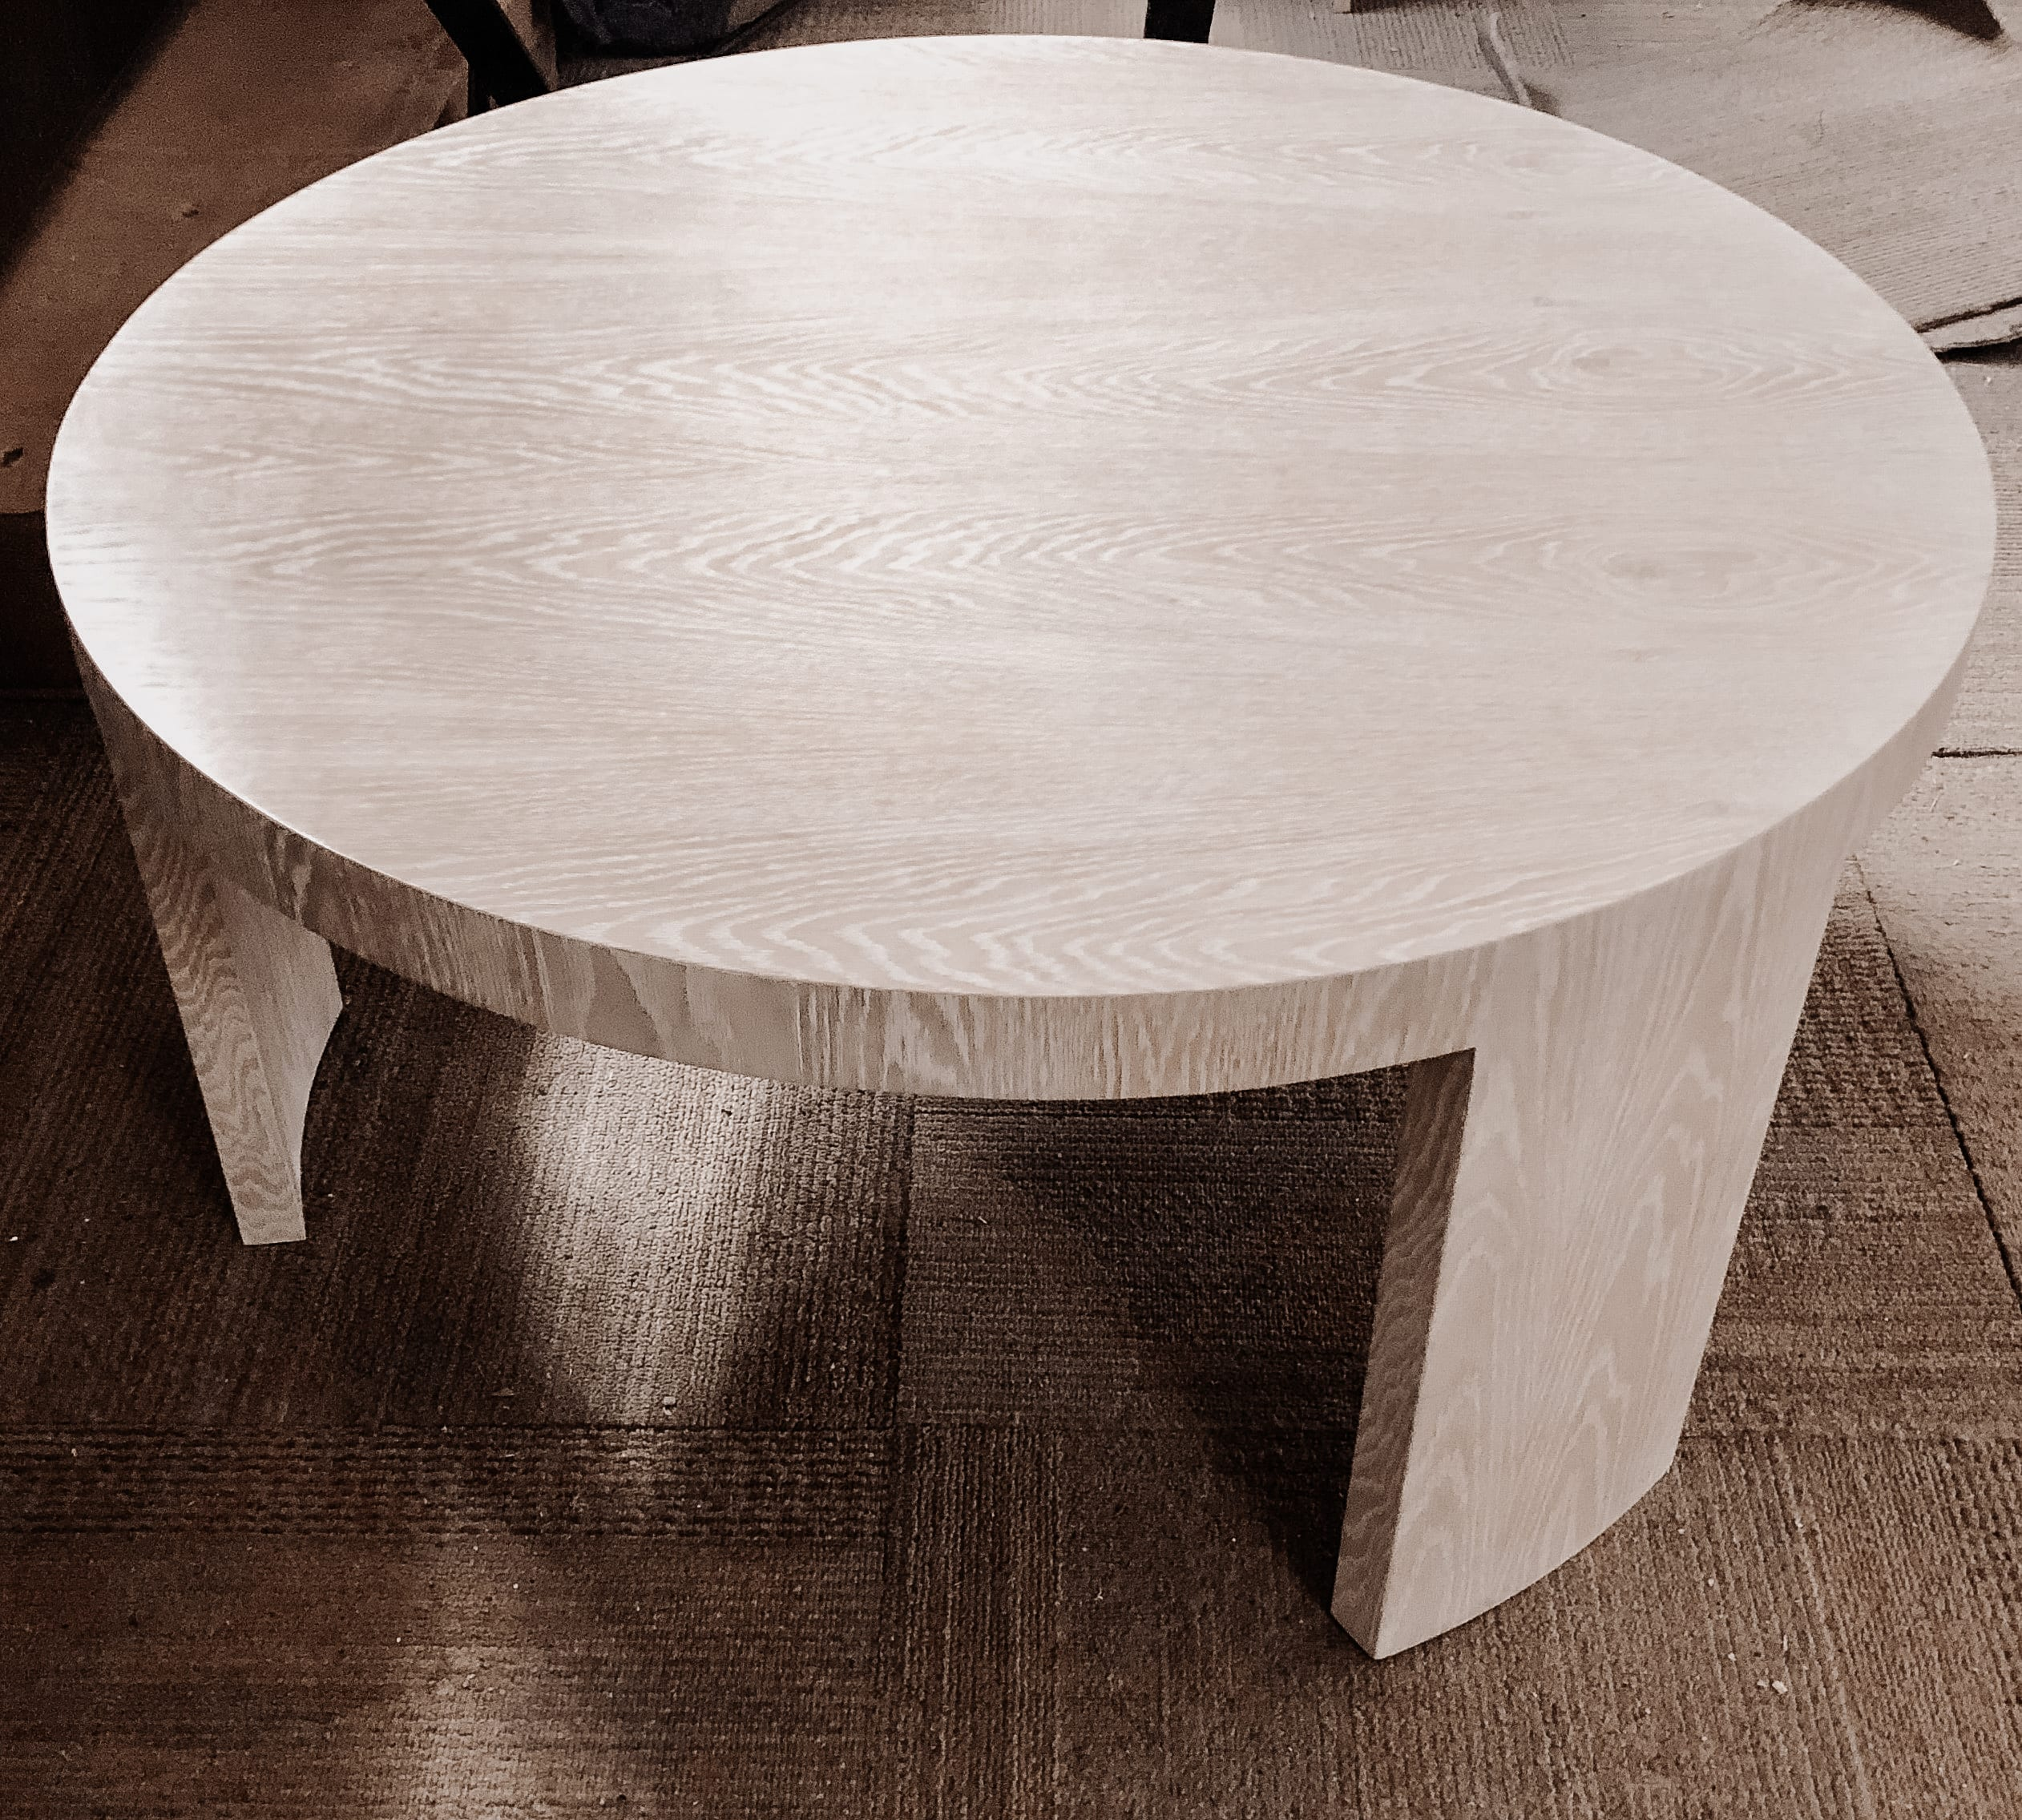 Limed white oak tripod table